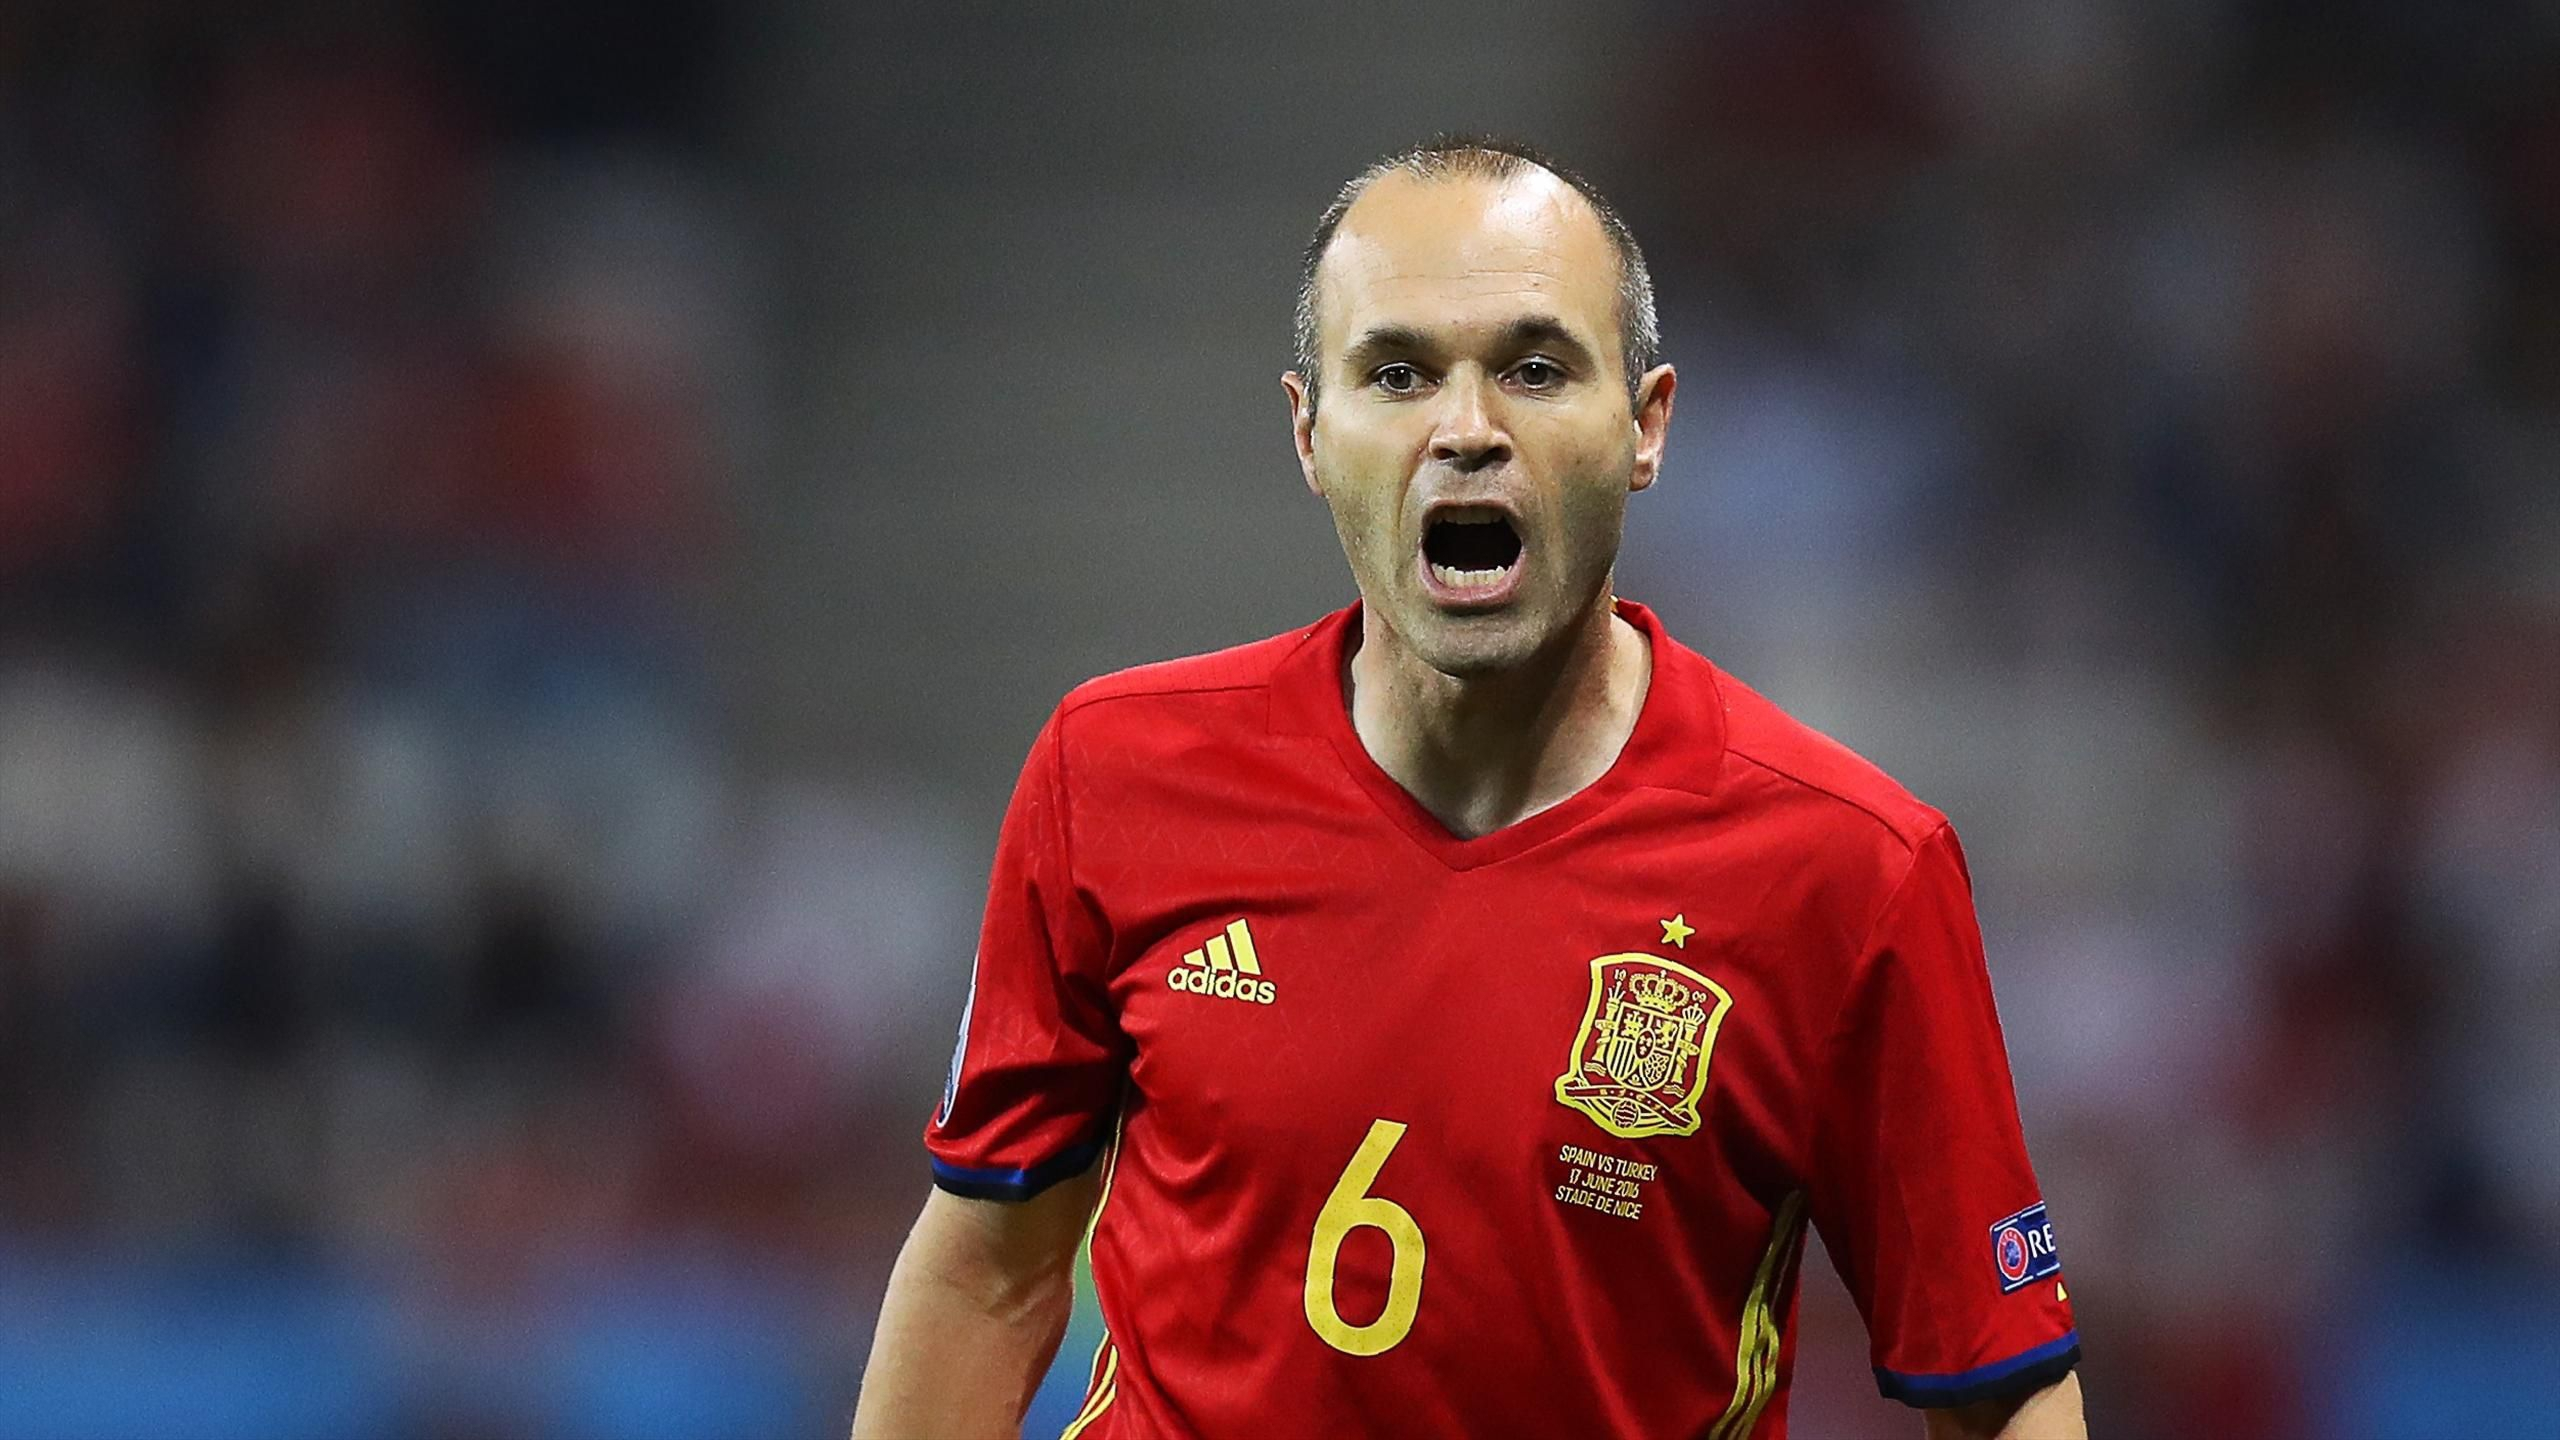 Cute Animated Love Heart Wallpapers For Mobile Andres Iniesta Wallpapers Hd